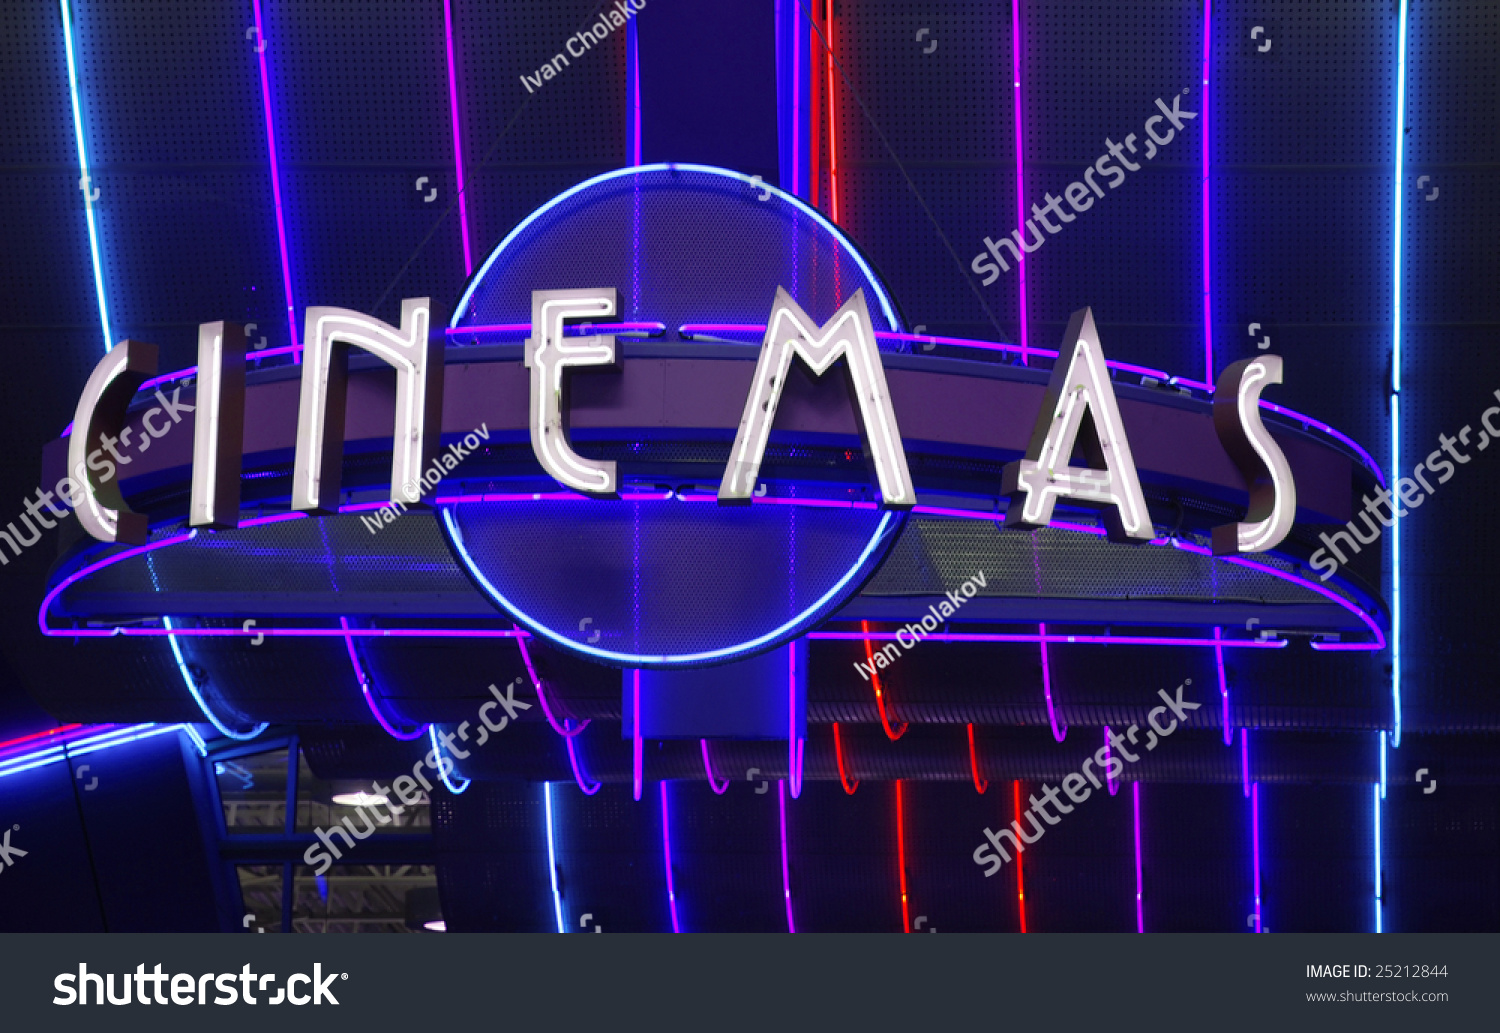 image gallery movie theater neon sign